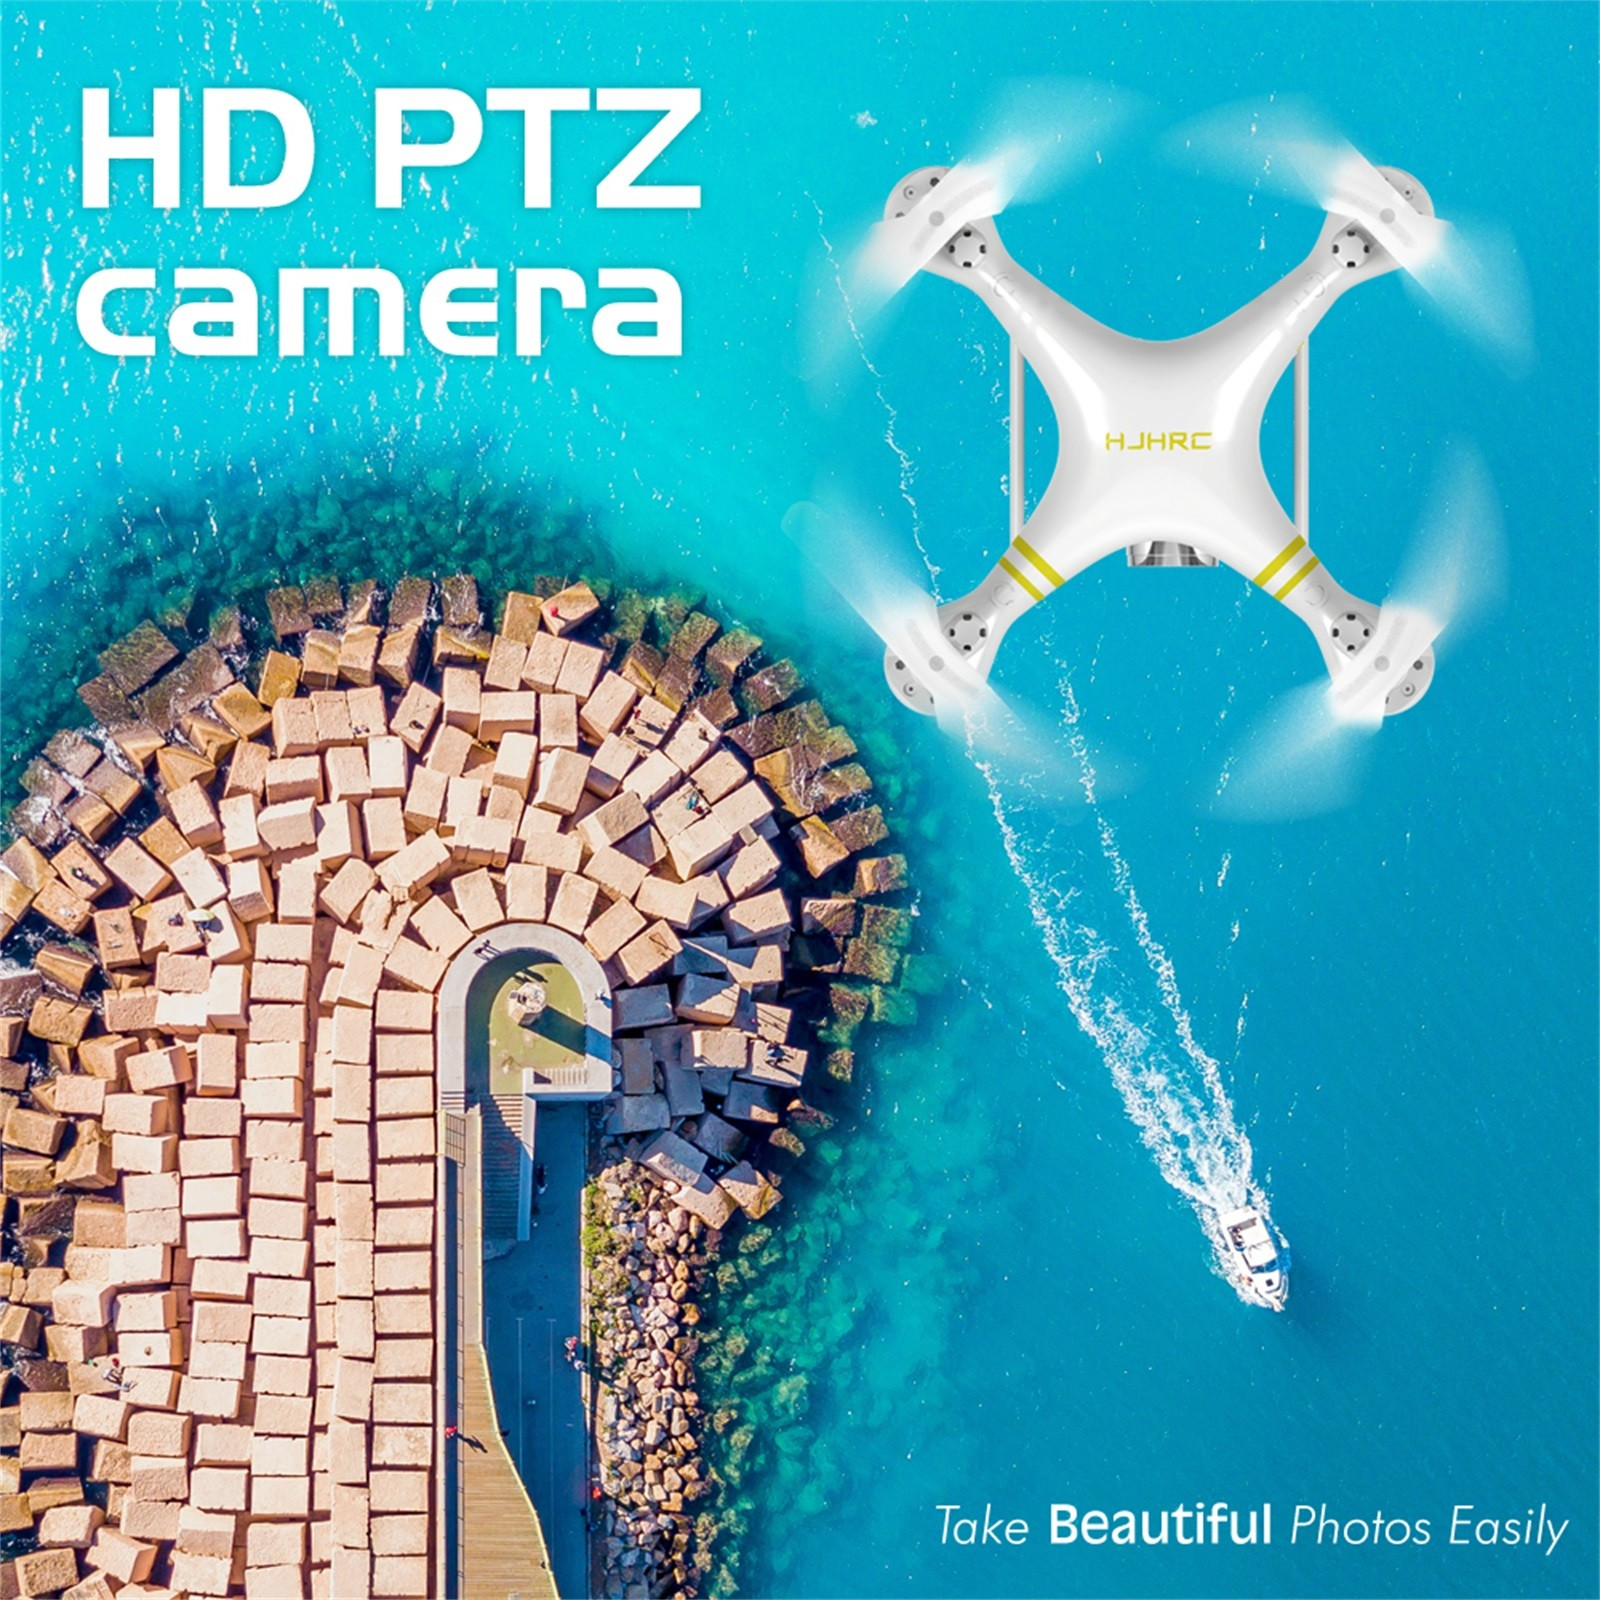 H4cea11f29fc04557a147d5191fae9901l - Hjhrc Four-axis Aerial Photography Aircraft Drone With Camera Hd 4k Wifi Fpv Foldable Drone Height Holding Headless Quadcopter